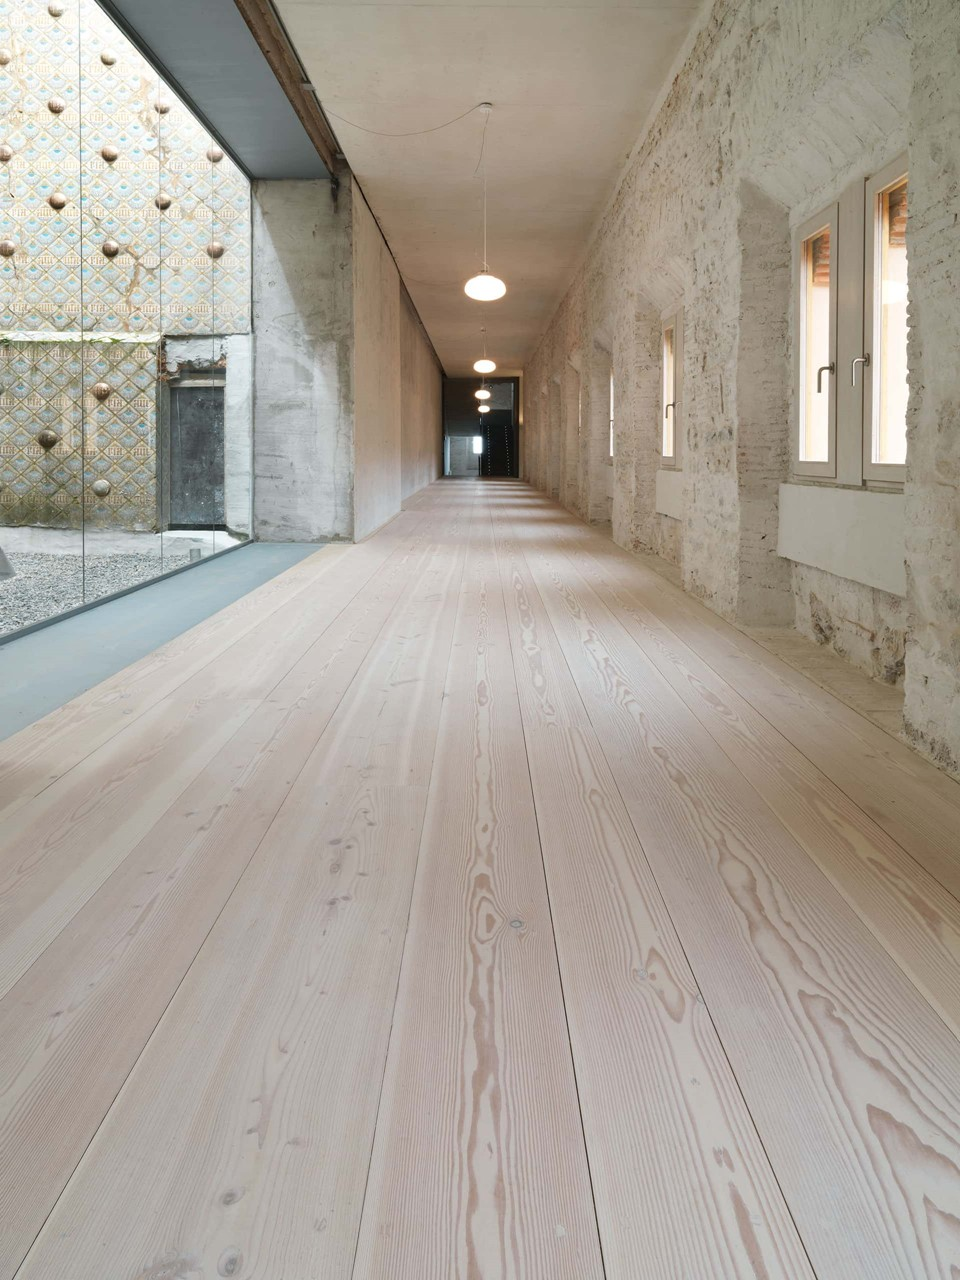 douglas-plank-floor-restoration_lye-white-soap_comillas-university-spain_dinesen.jpg